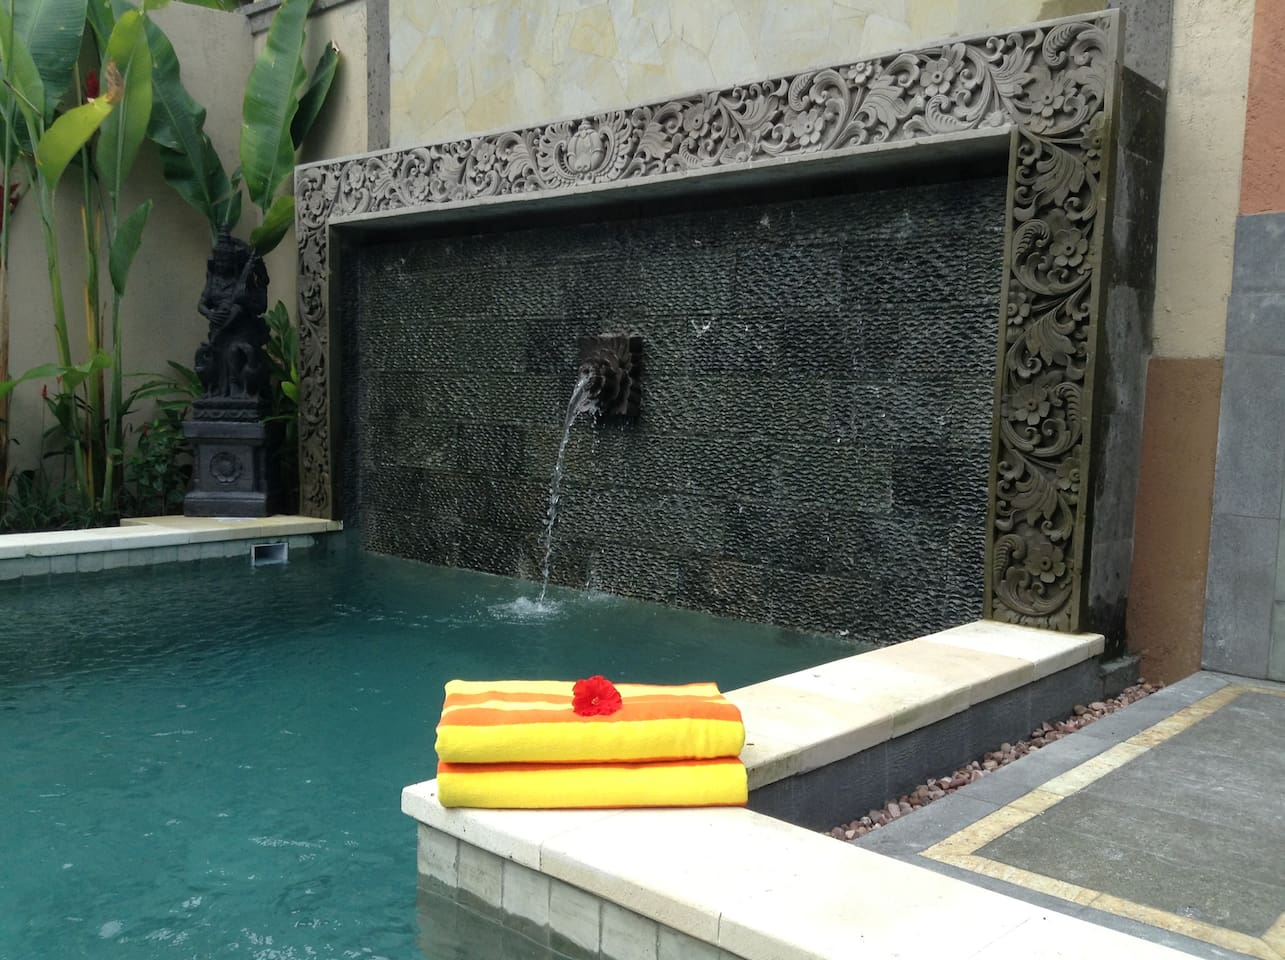 Enjoy peaceful tranquilty by the artisan pool at Villa Laba Puseh.